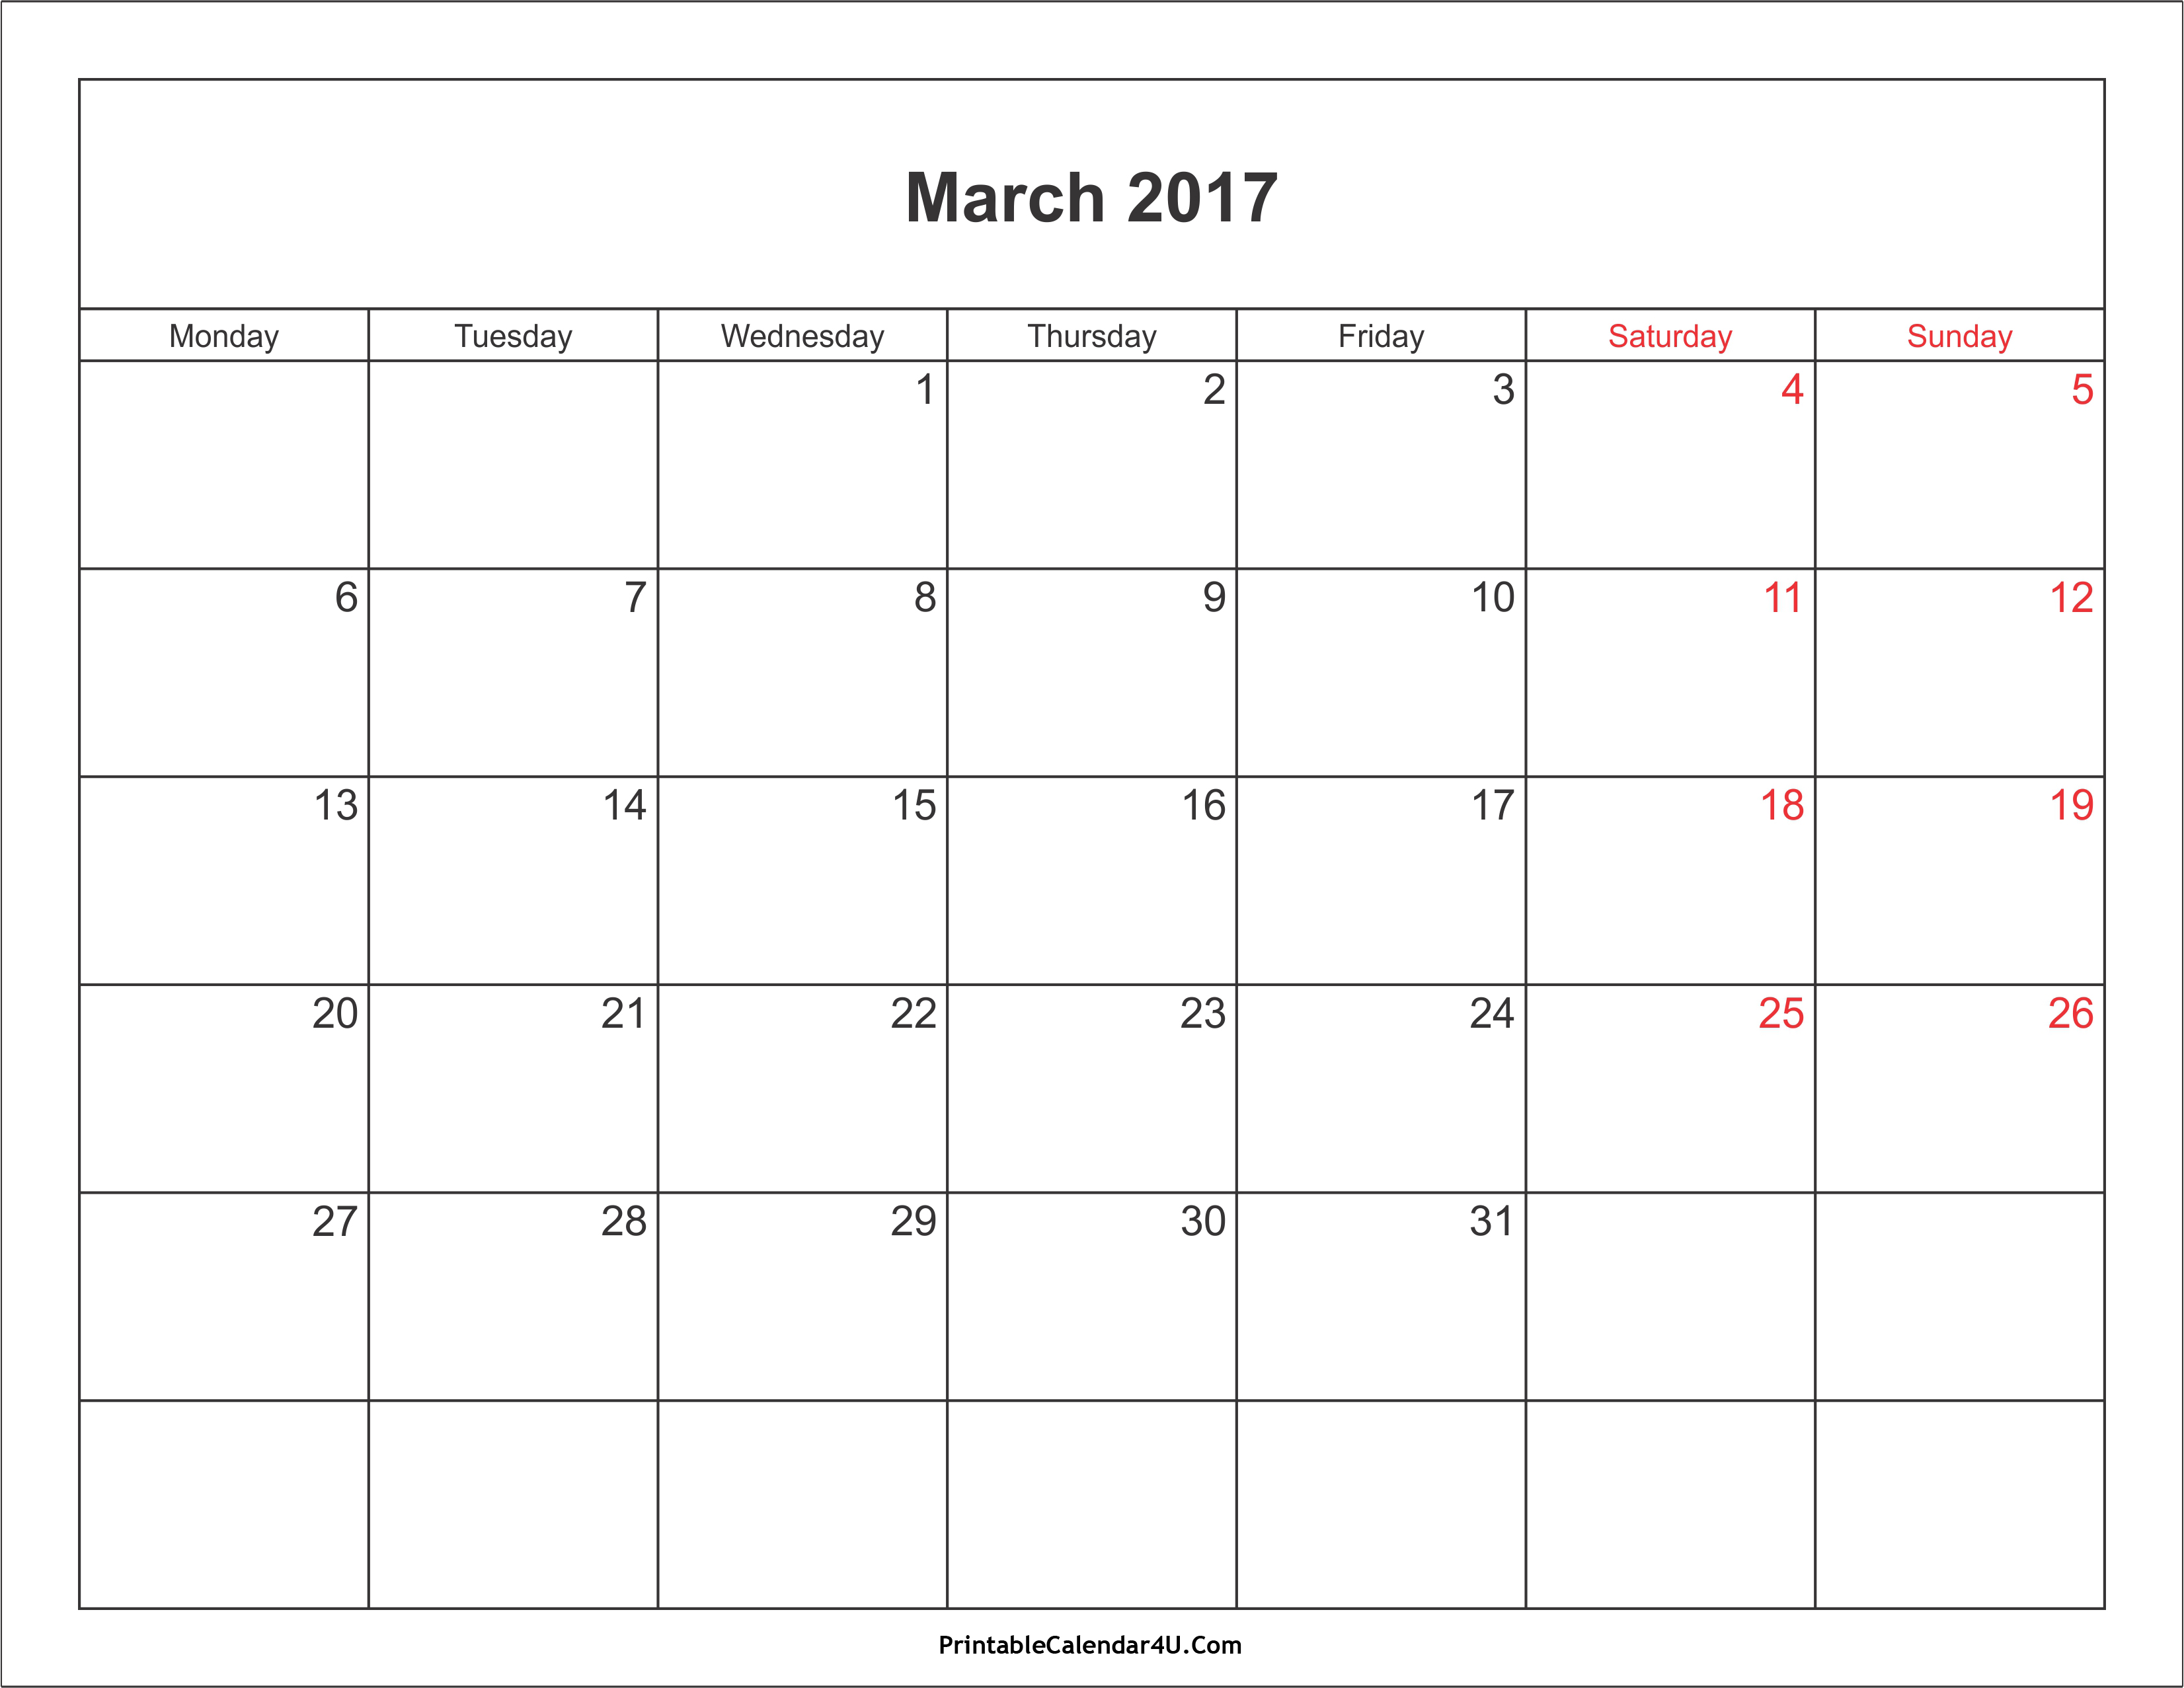 March 2017 Calendar Printable with Holidays PDF and